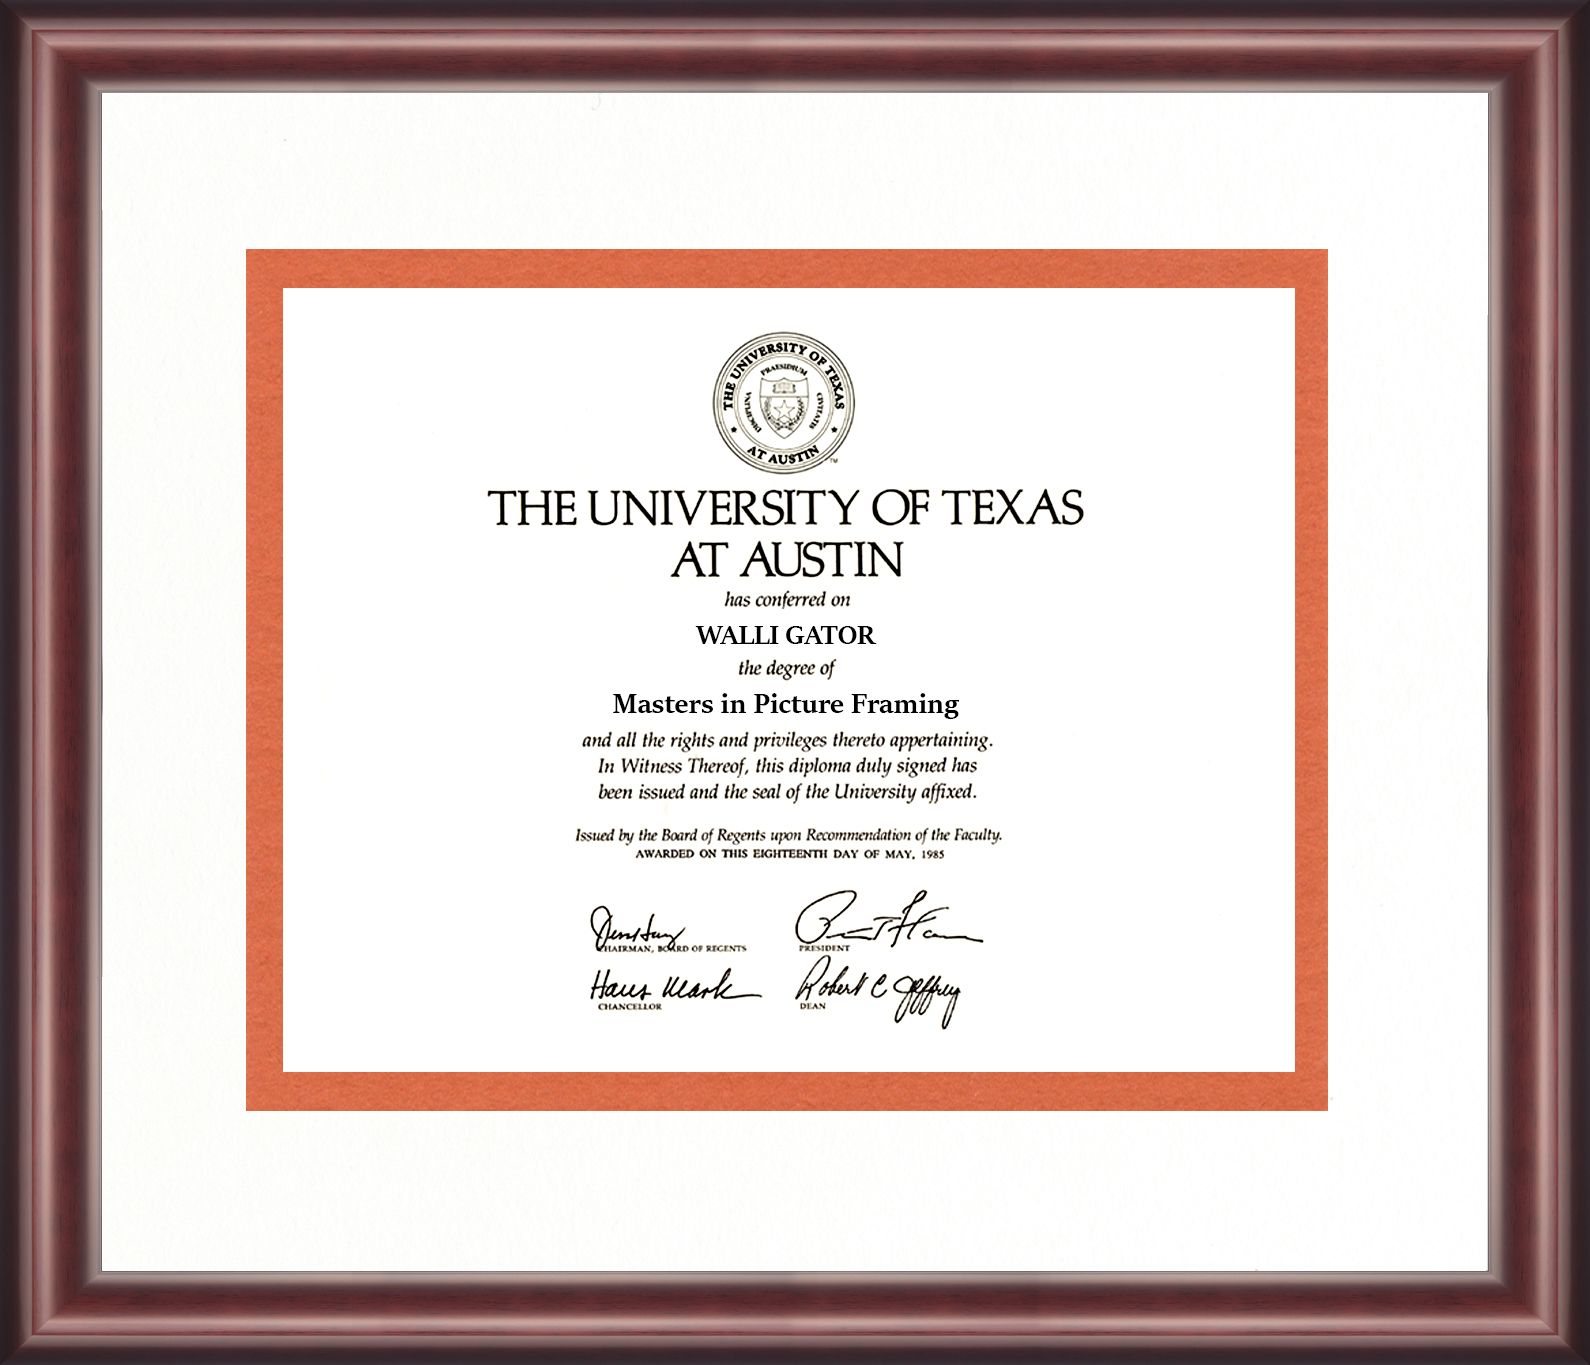 University of Texas Diploma Frame | Diploma Frames | Pinterest ...